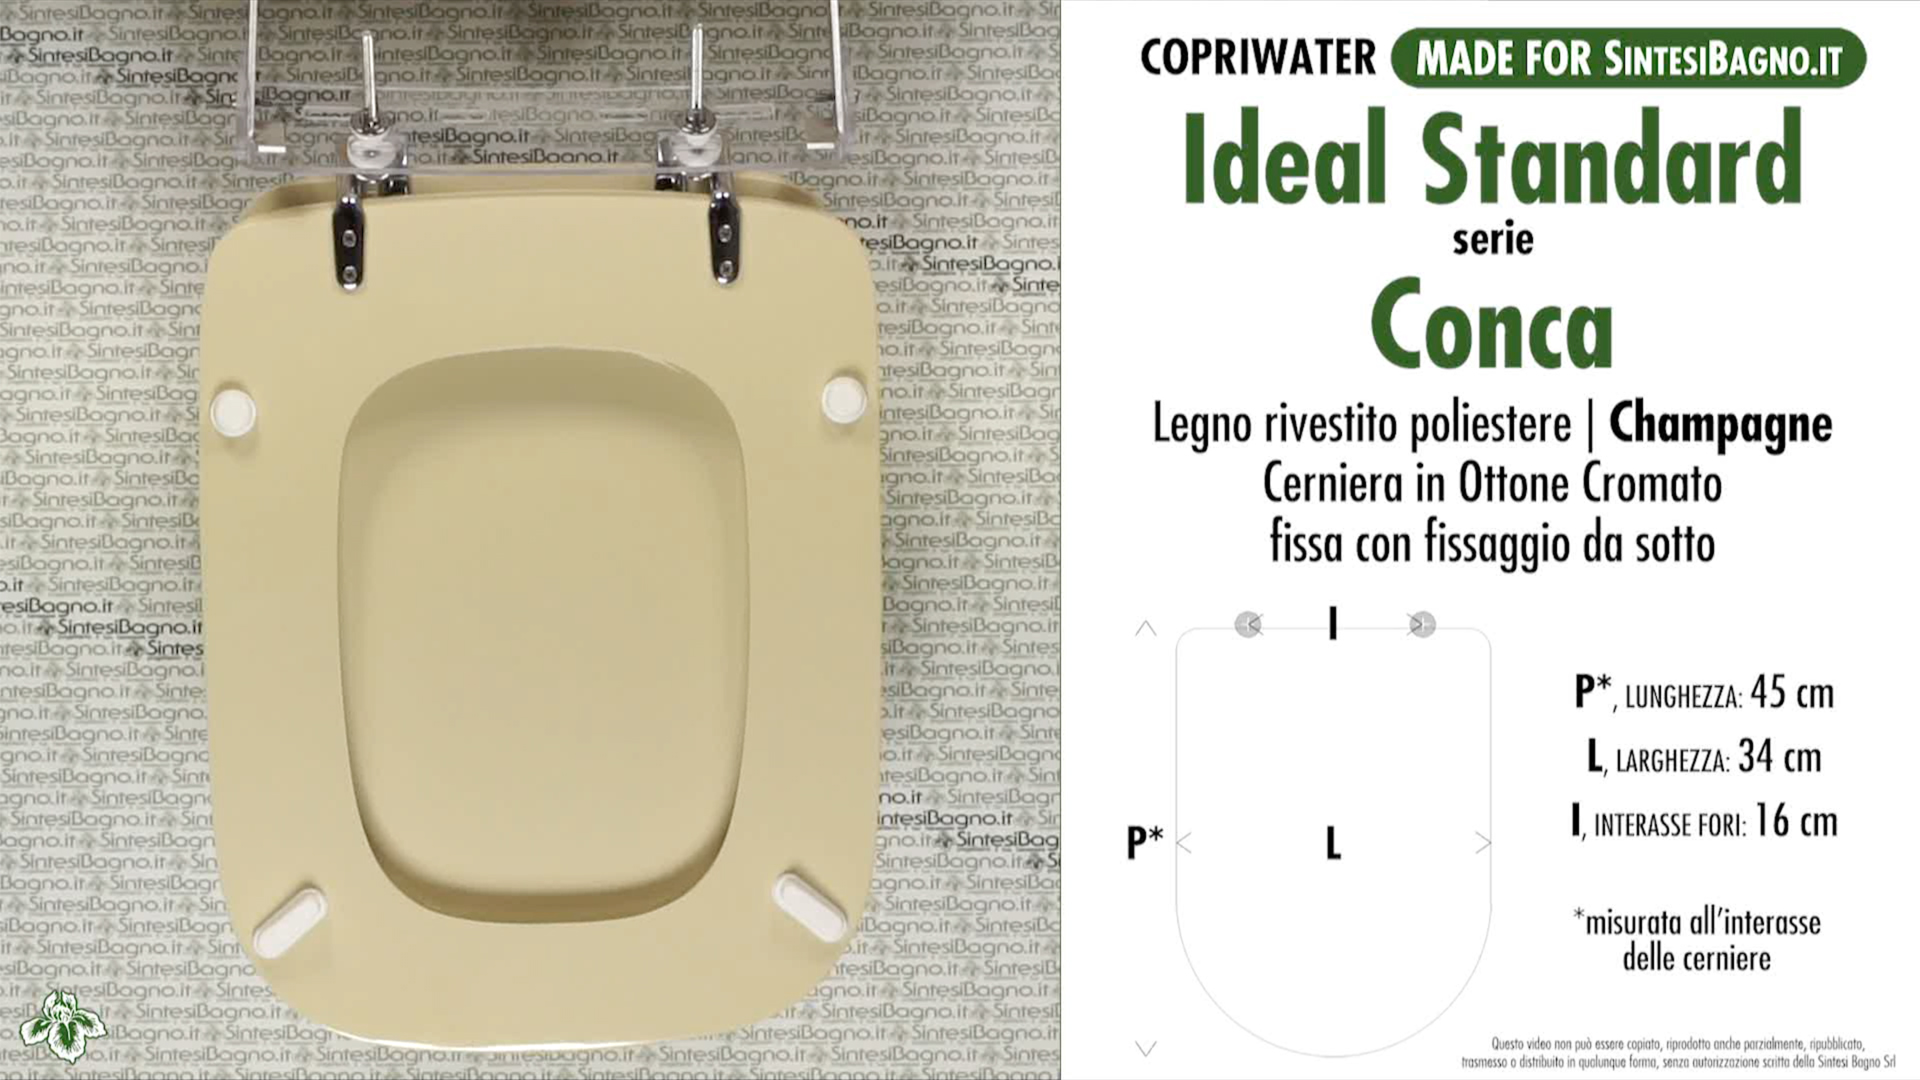 Wc seat sintesibagno made for ideal standard wc conca for Cuvette wc ideal standard